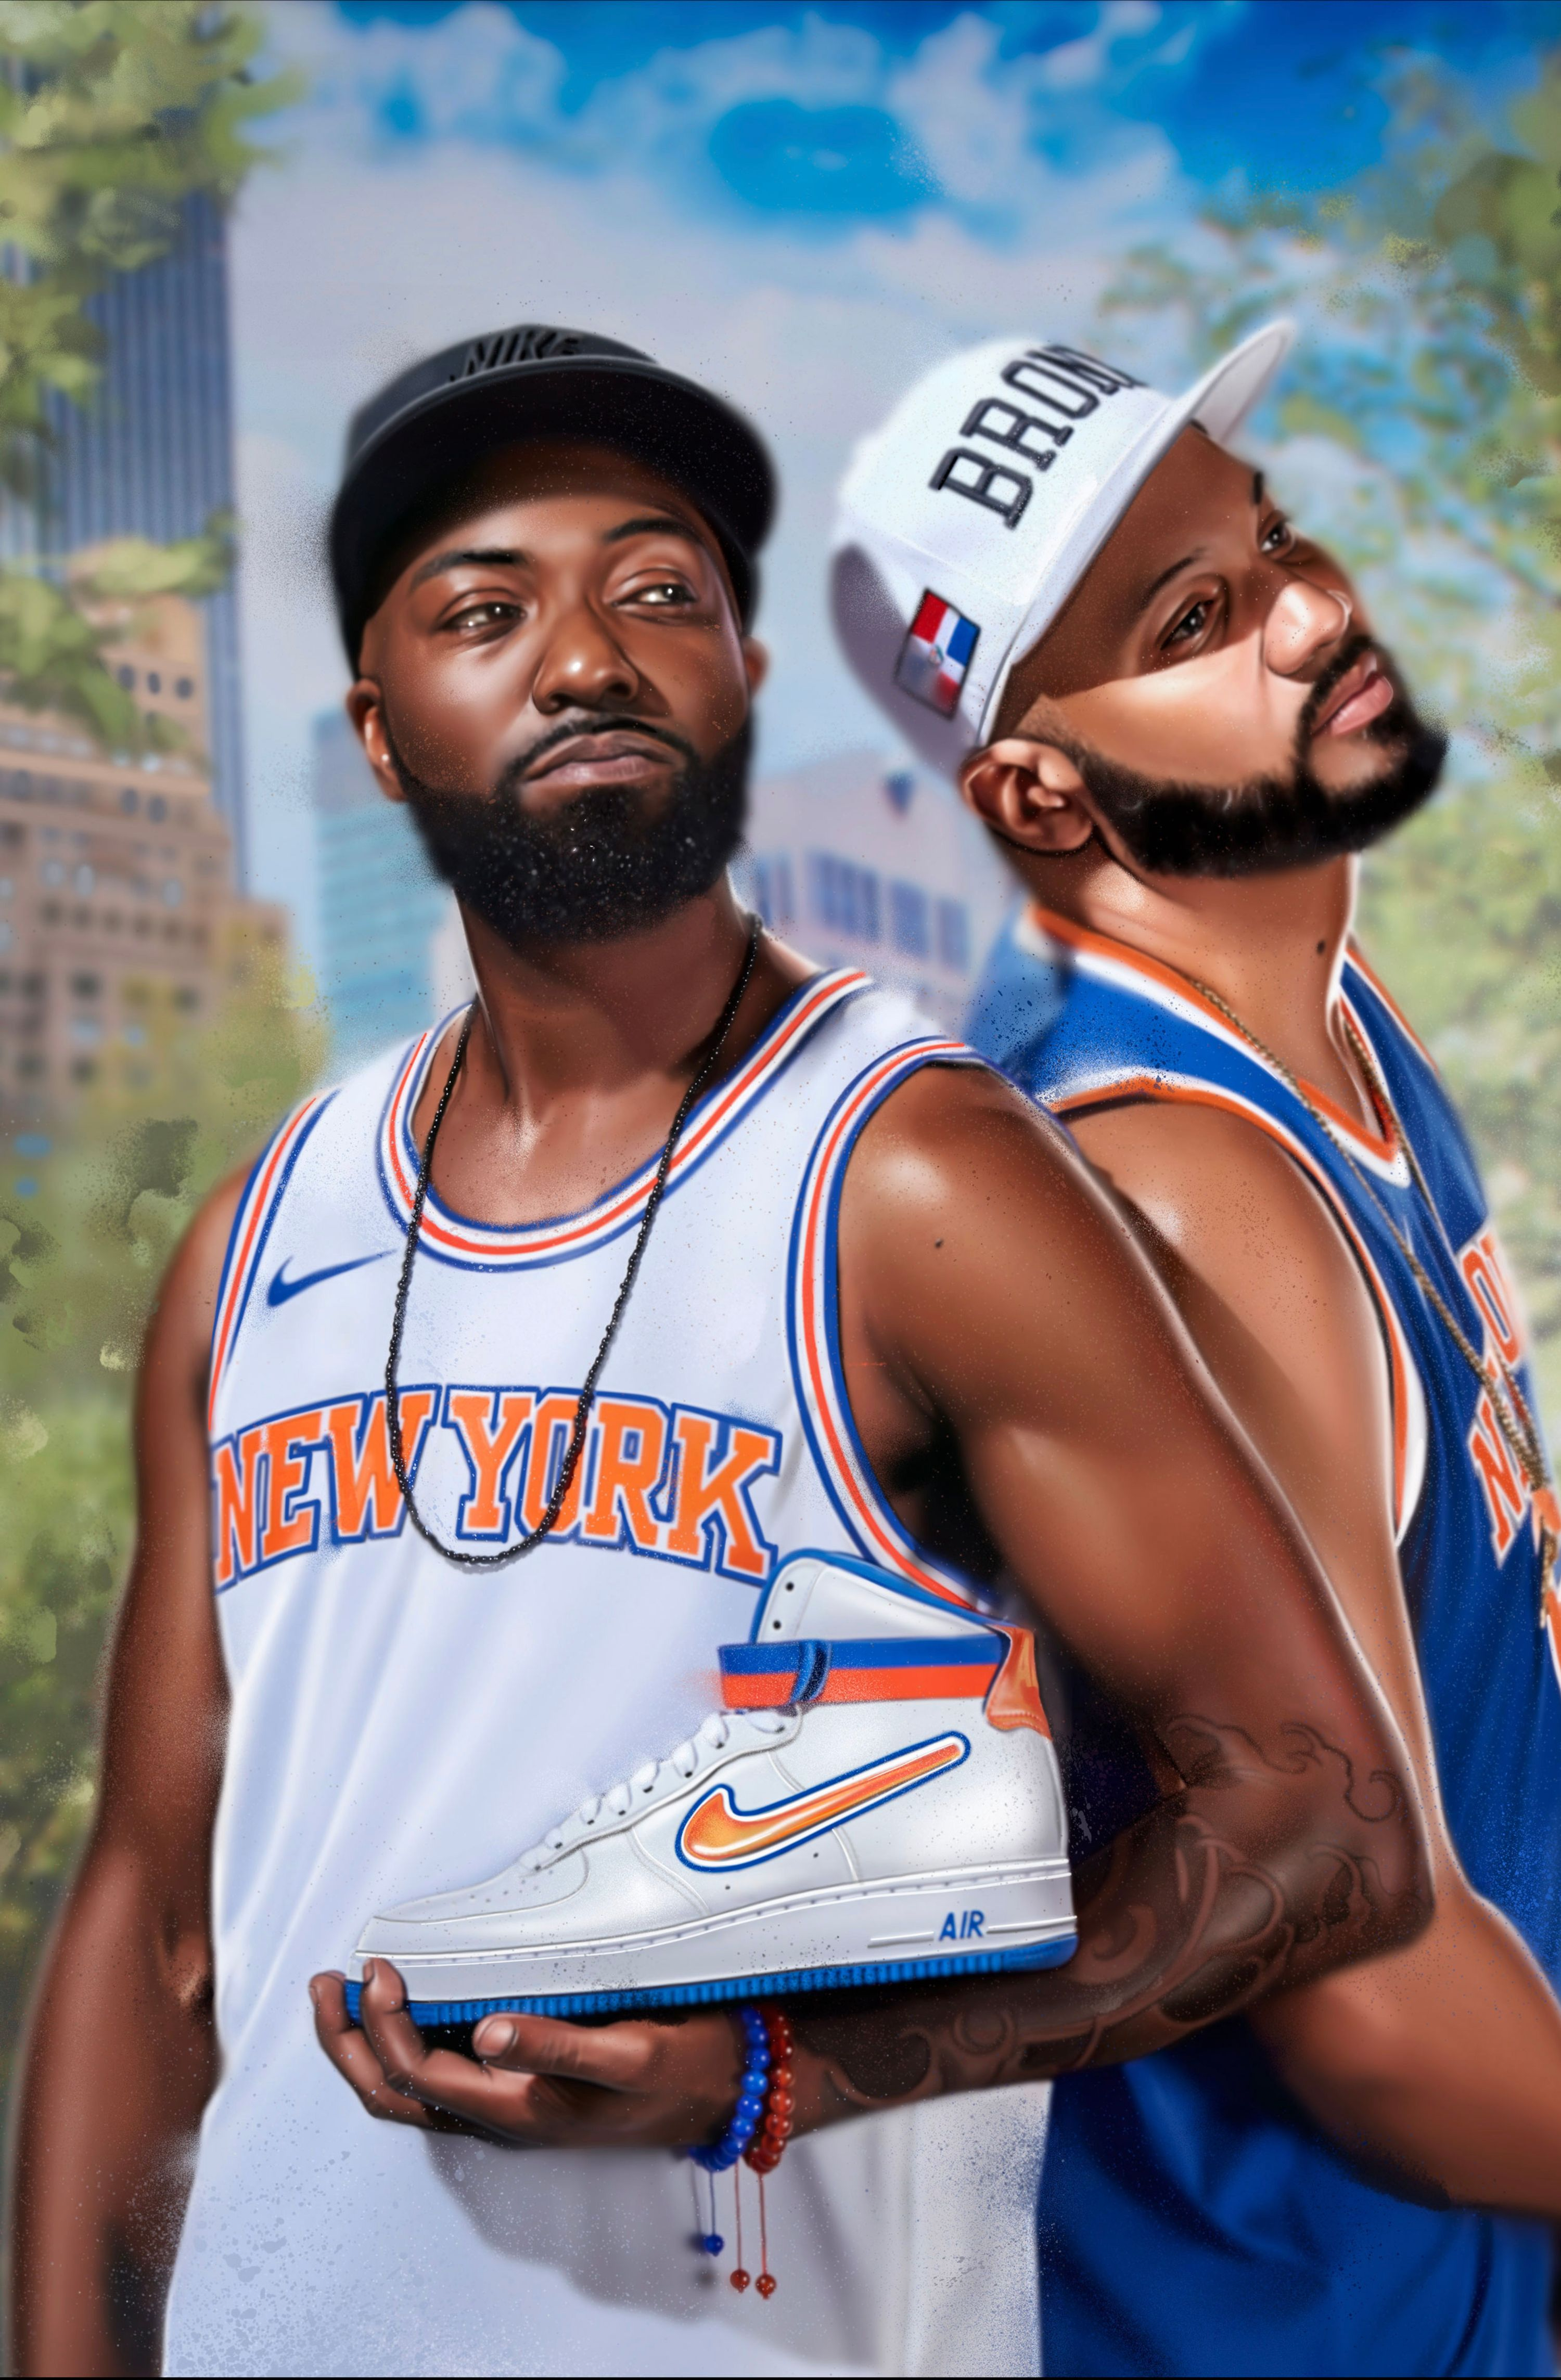 Desus and Mero holding a shoe